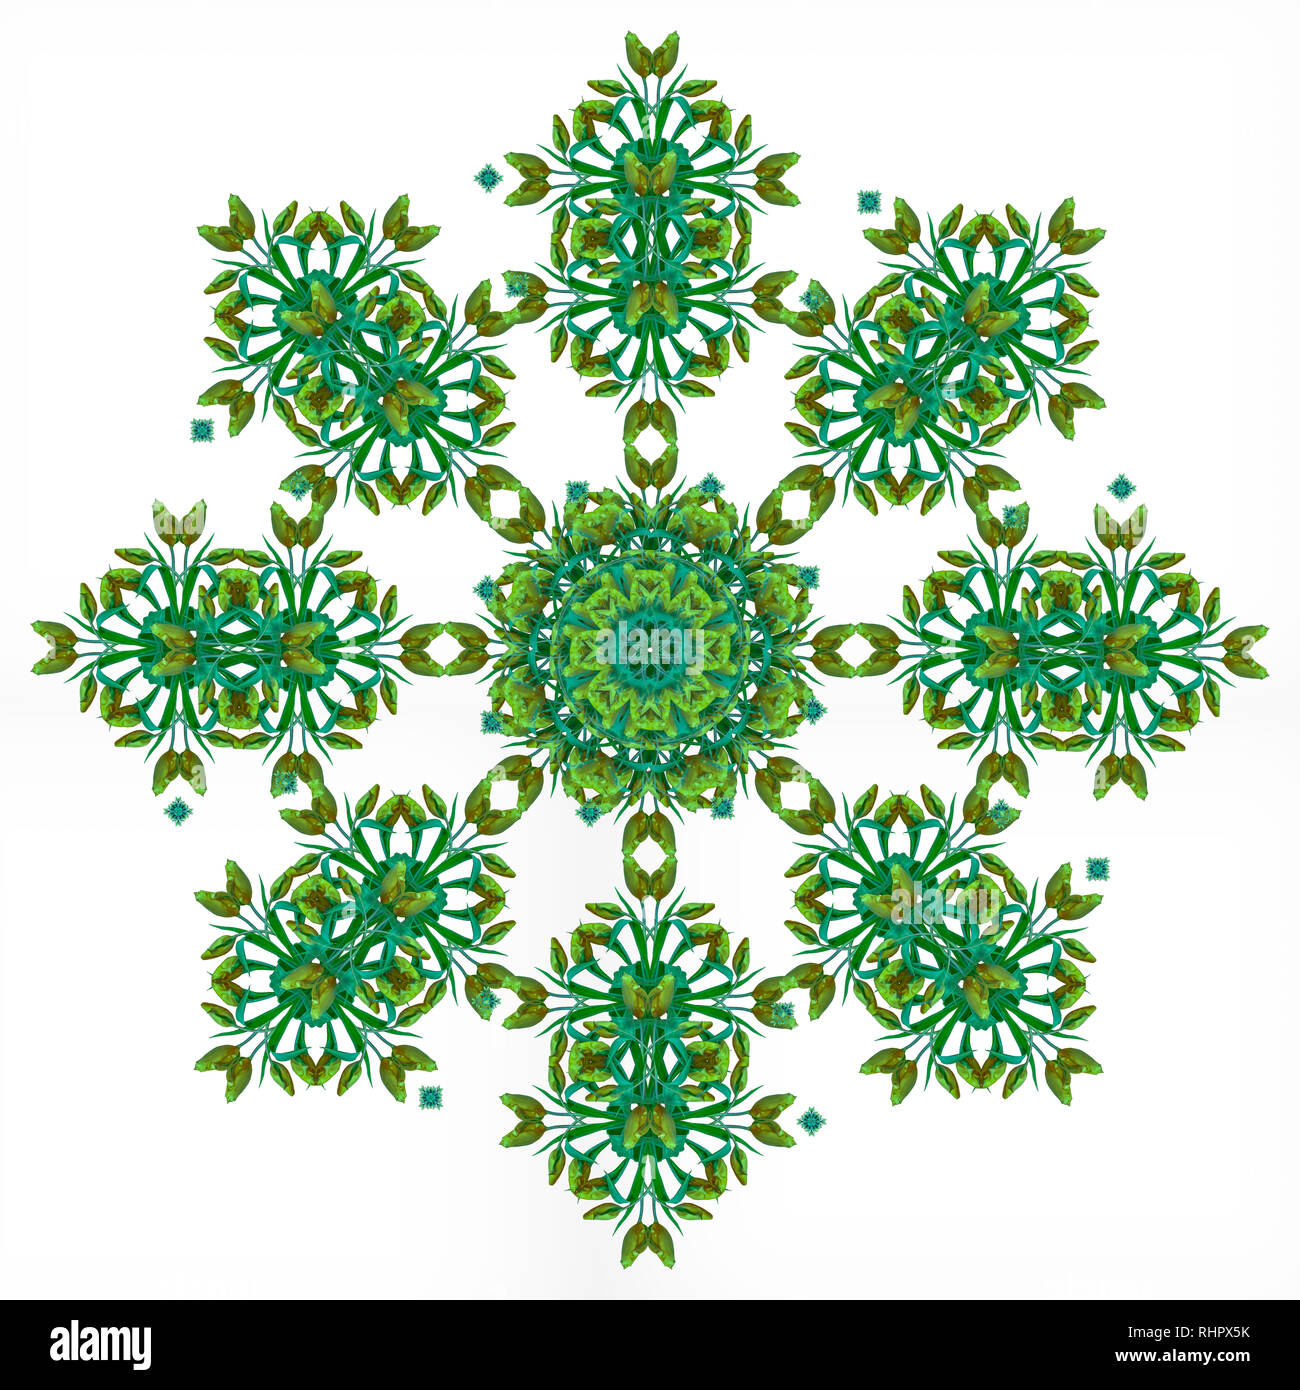 Fine art floral decorative and symmetrical fractal color pattern made from macros of yellow bright green tulips,white background,vintage painting Stock Photo